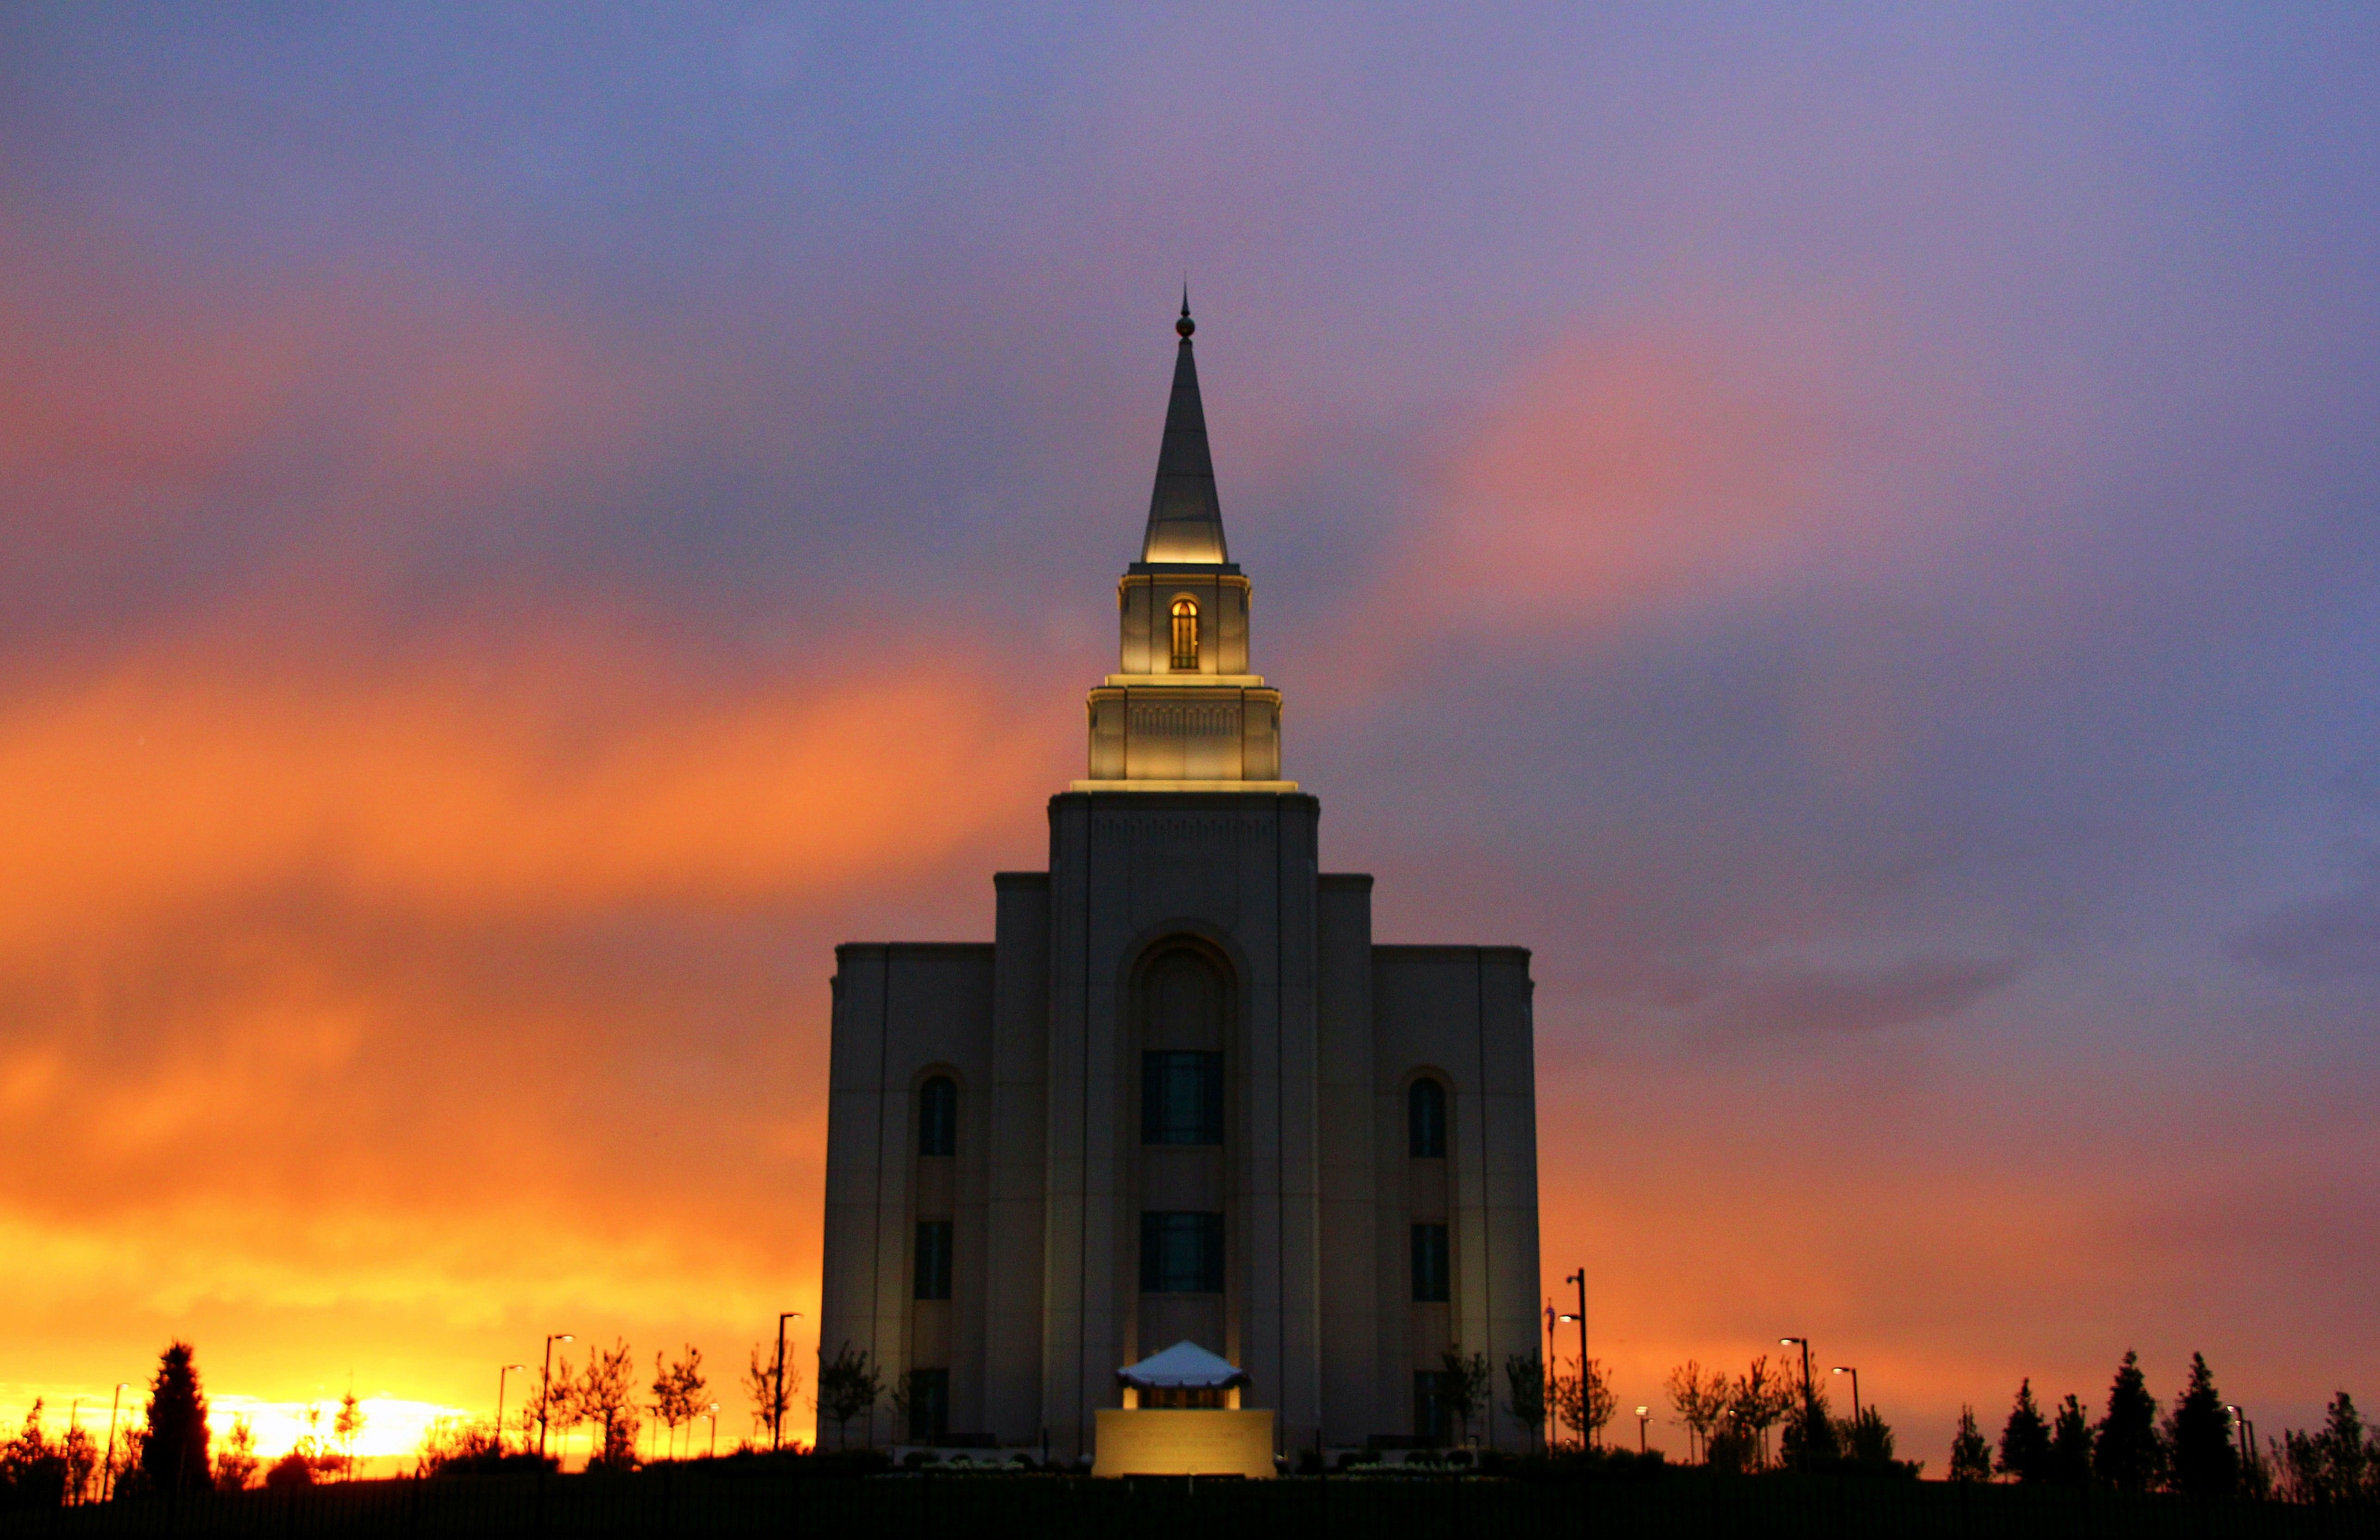 The front of the Kansas City Missouri Temple at sunset.